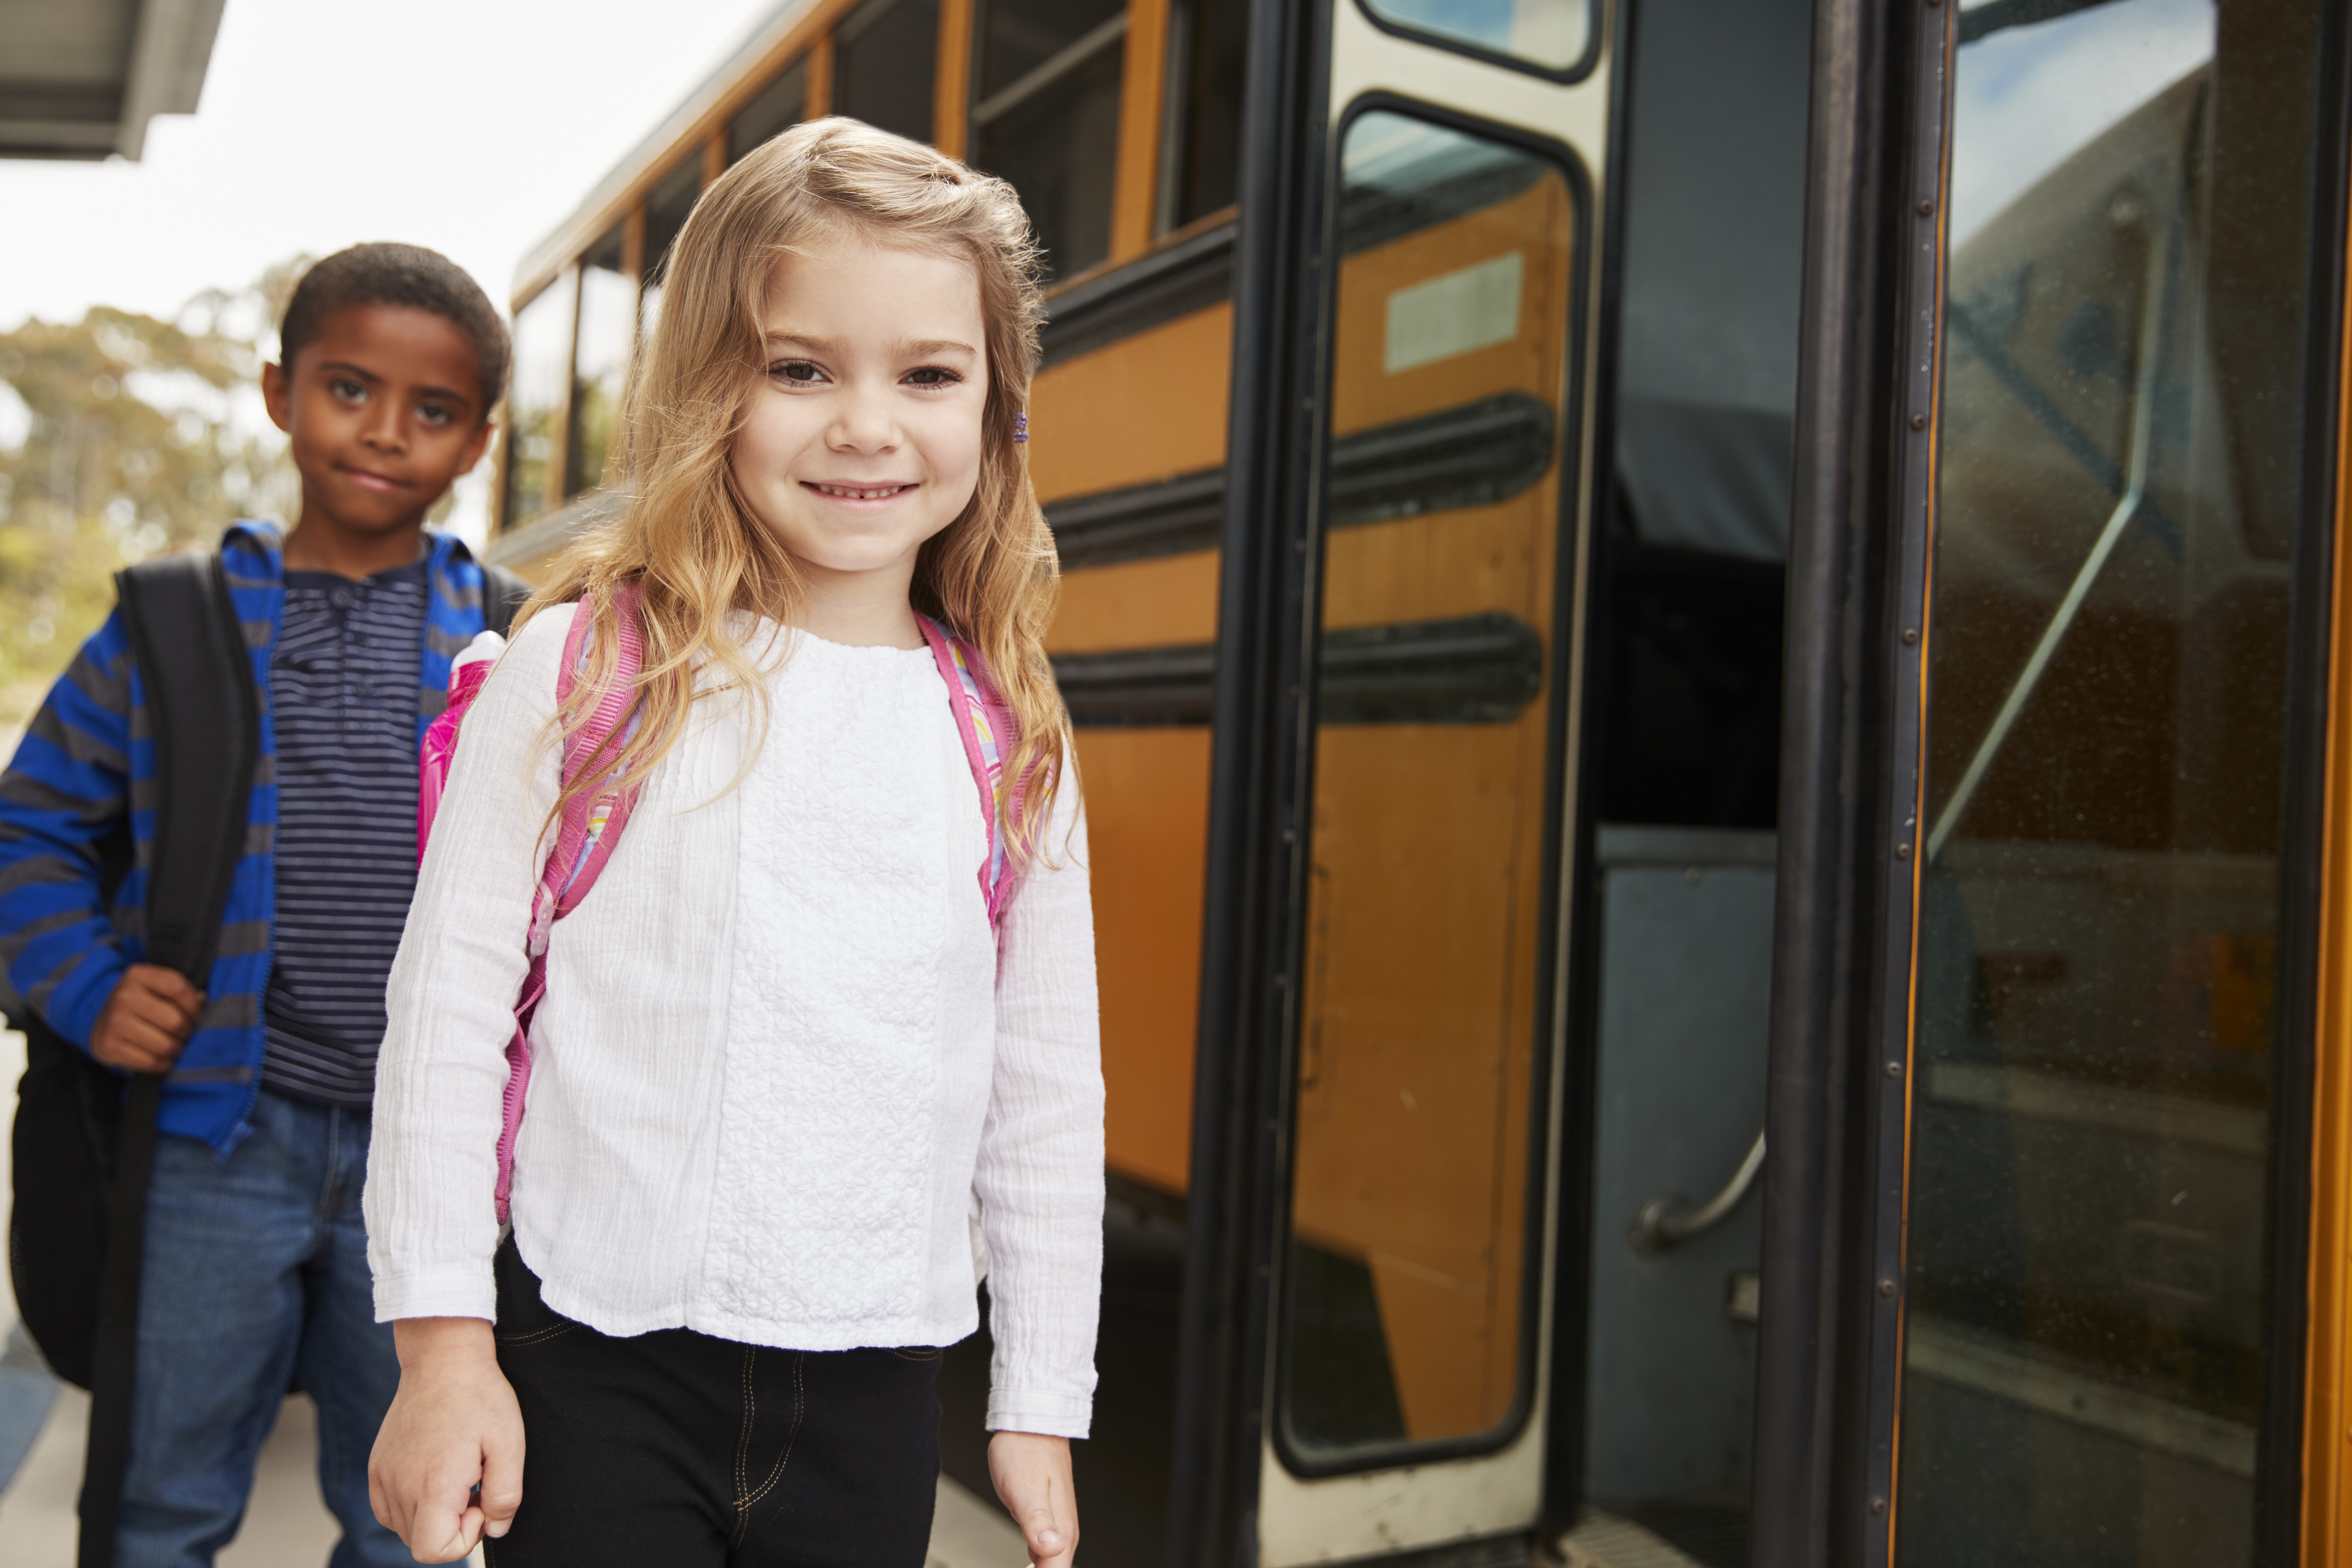 Get a Great Start at Their New School